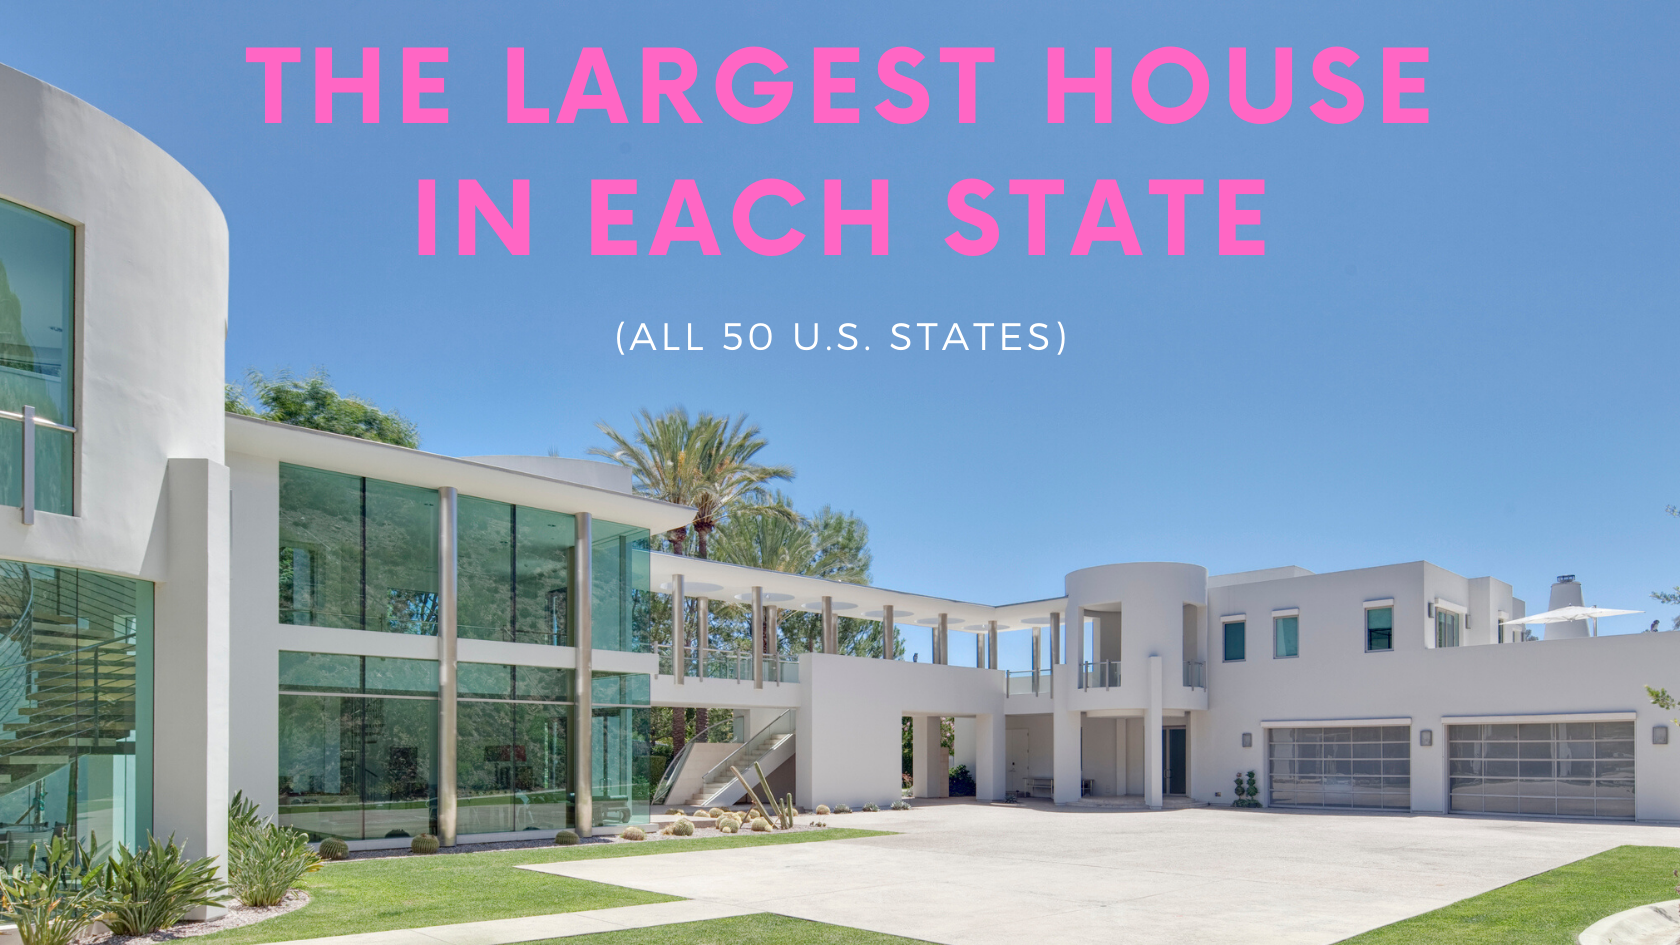 largest house in each state, biggest house in each state, best houses in each state, largest home in america, largest private